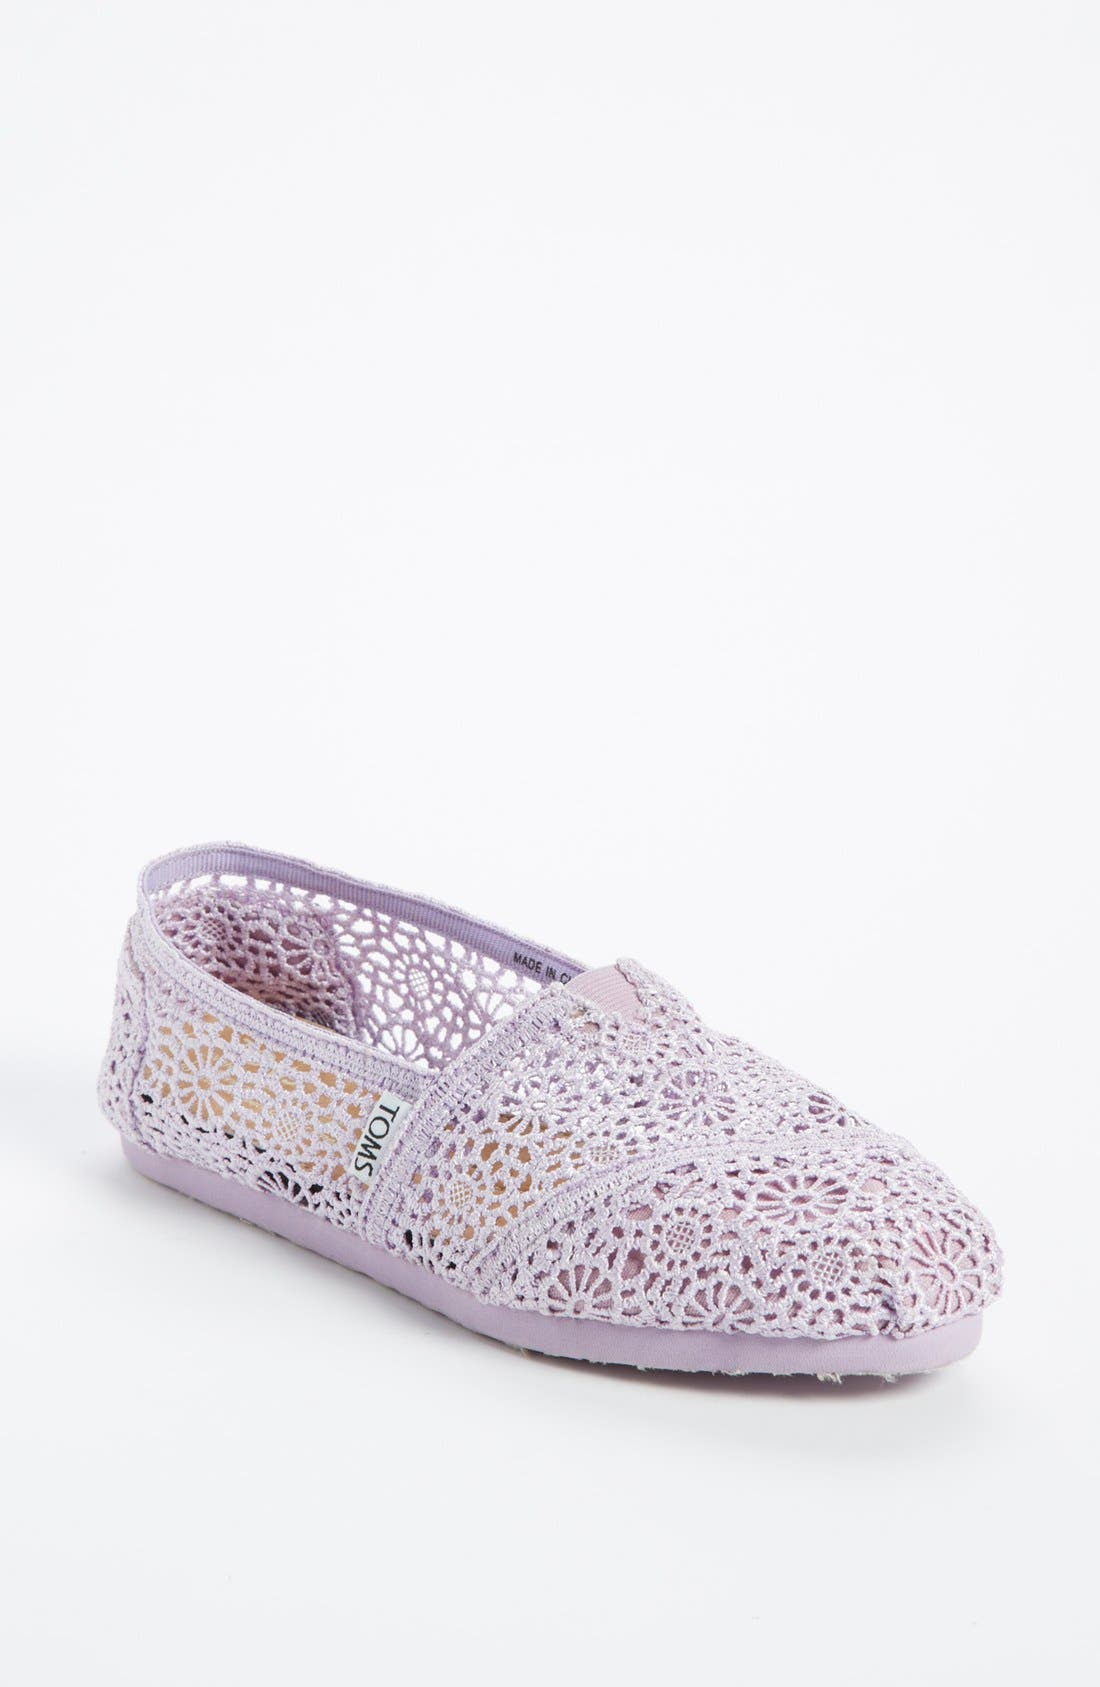 Alternate Image 1 Selected - TOMS 'Classic - Lilac Snow' Crochet Slip-On (Women)